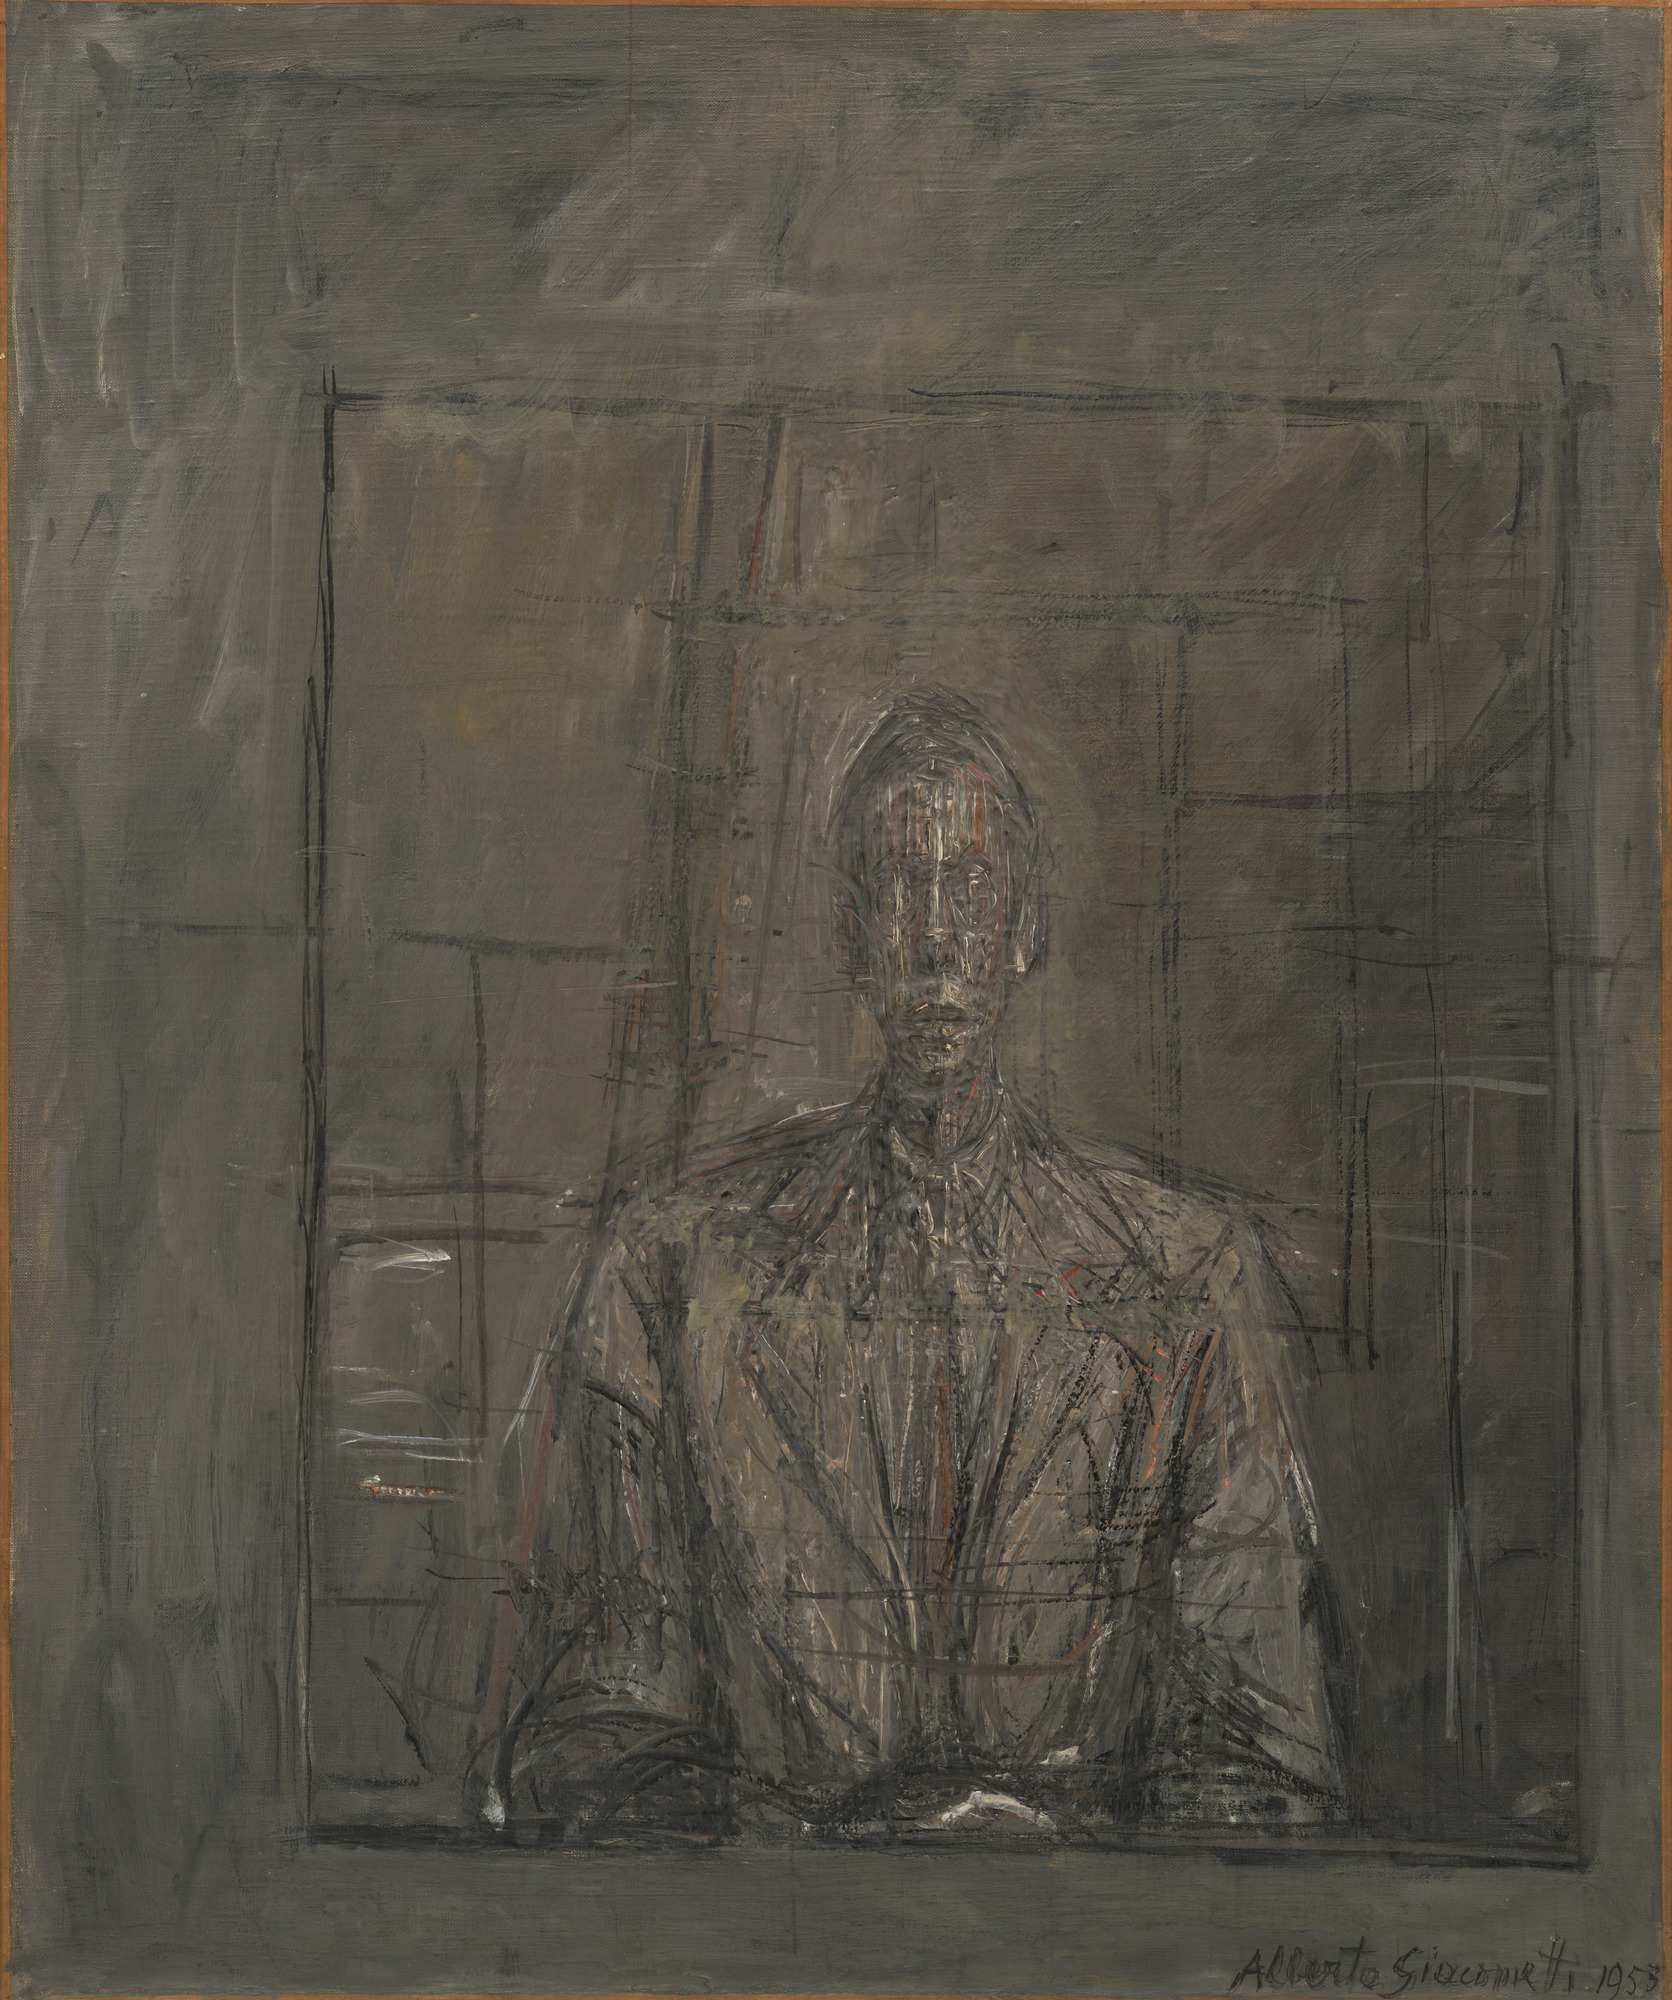 Alberto Giacometti Ritratto di Peter Watson (1953). MoMa, New York ©2018 Artists Rights Society (ARS), New York/ADAGP, Parigi